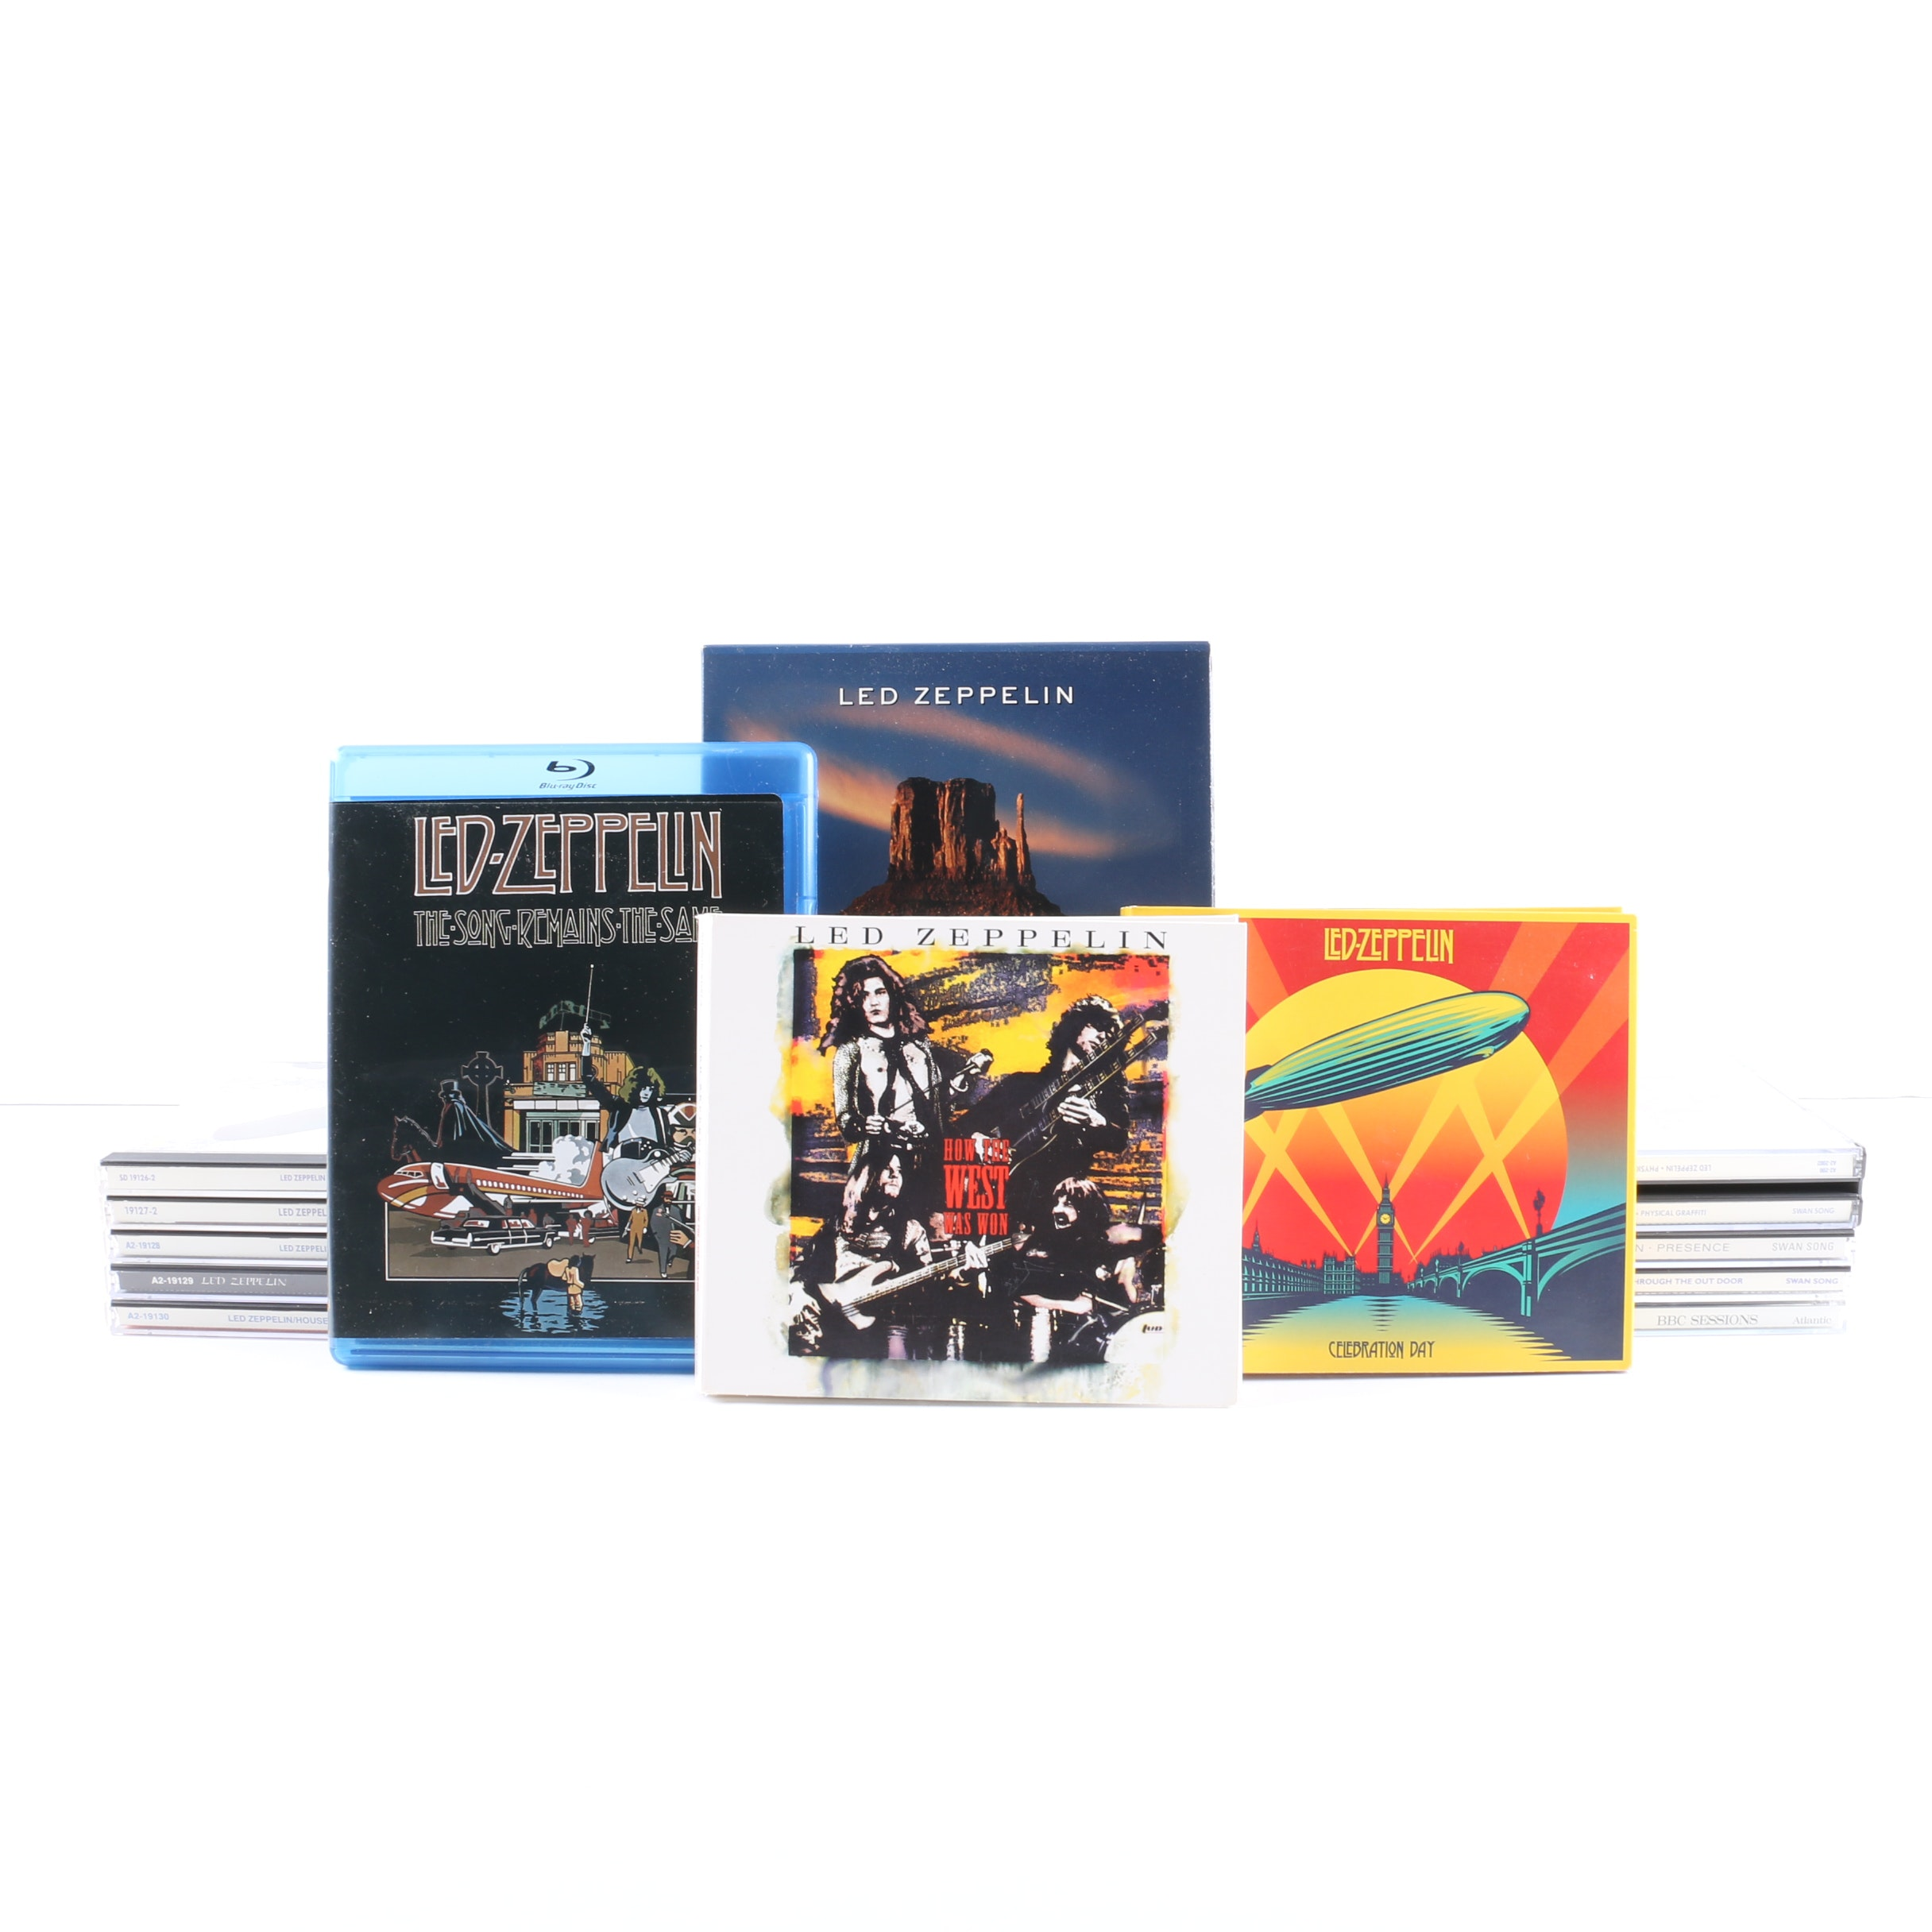 Led Zeppelin CD, Blu-Ray, and DVD Collection